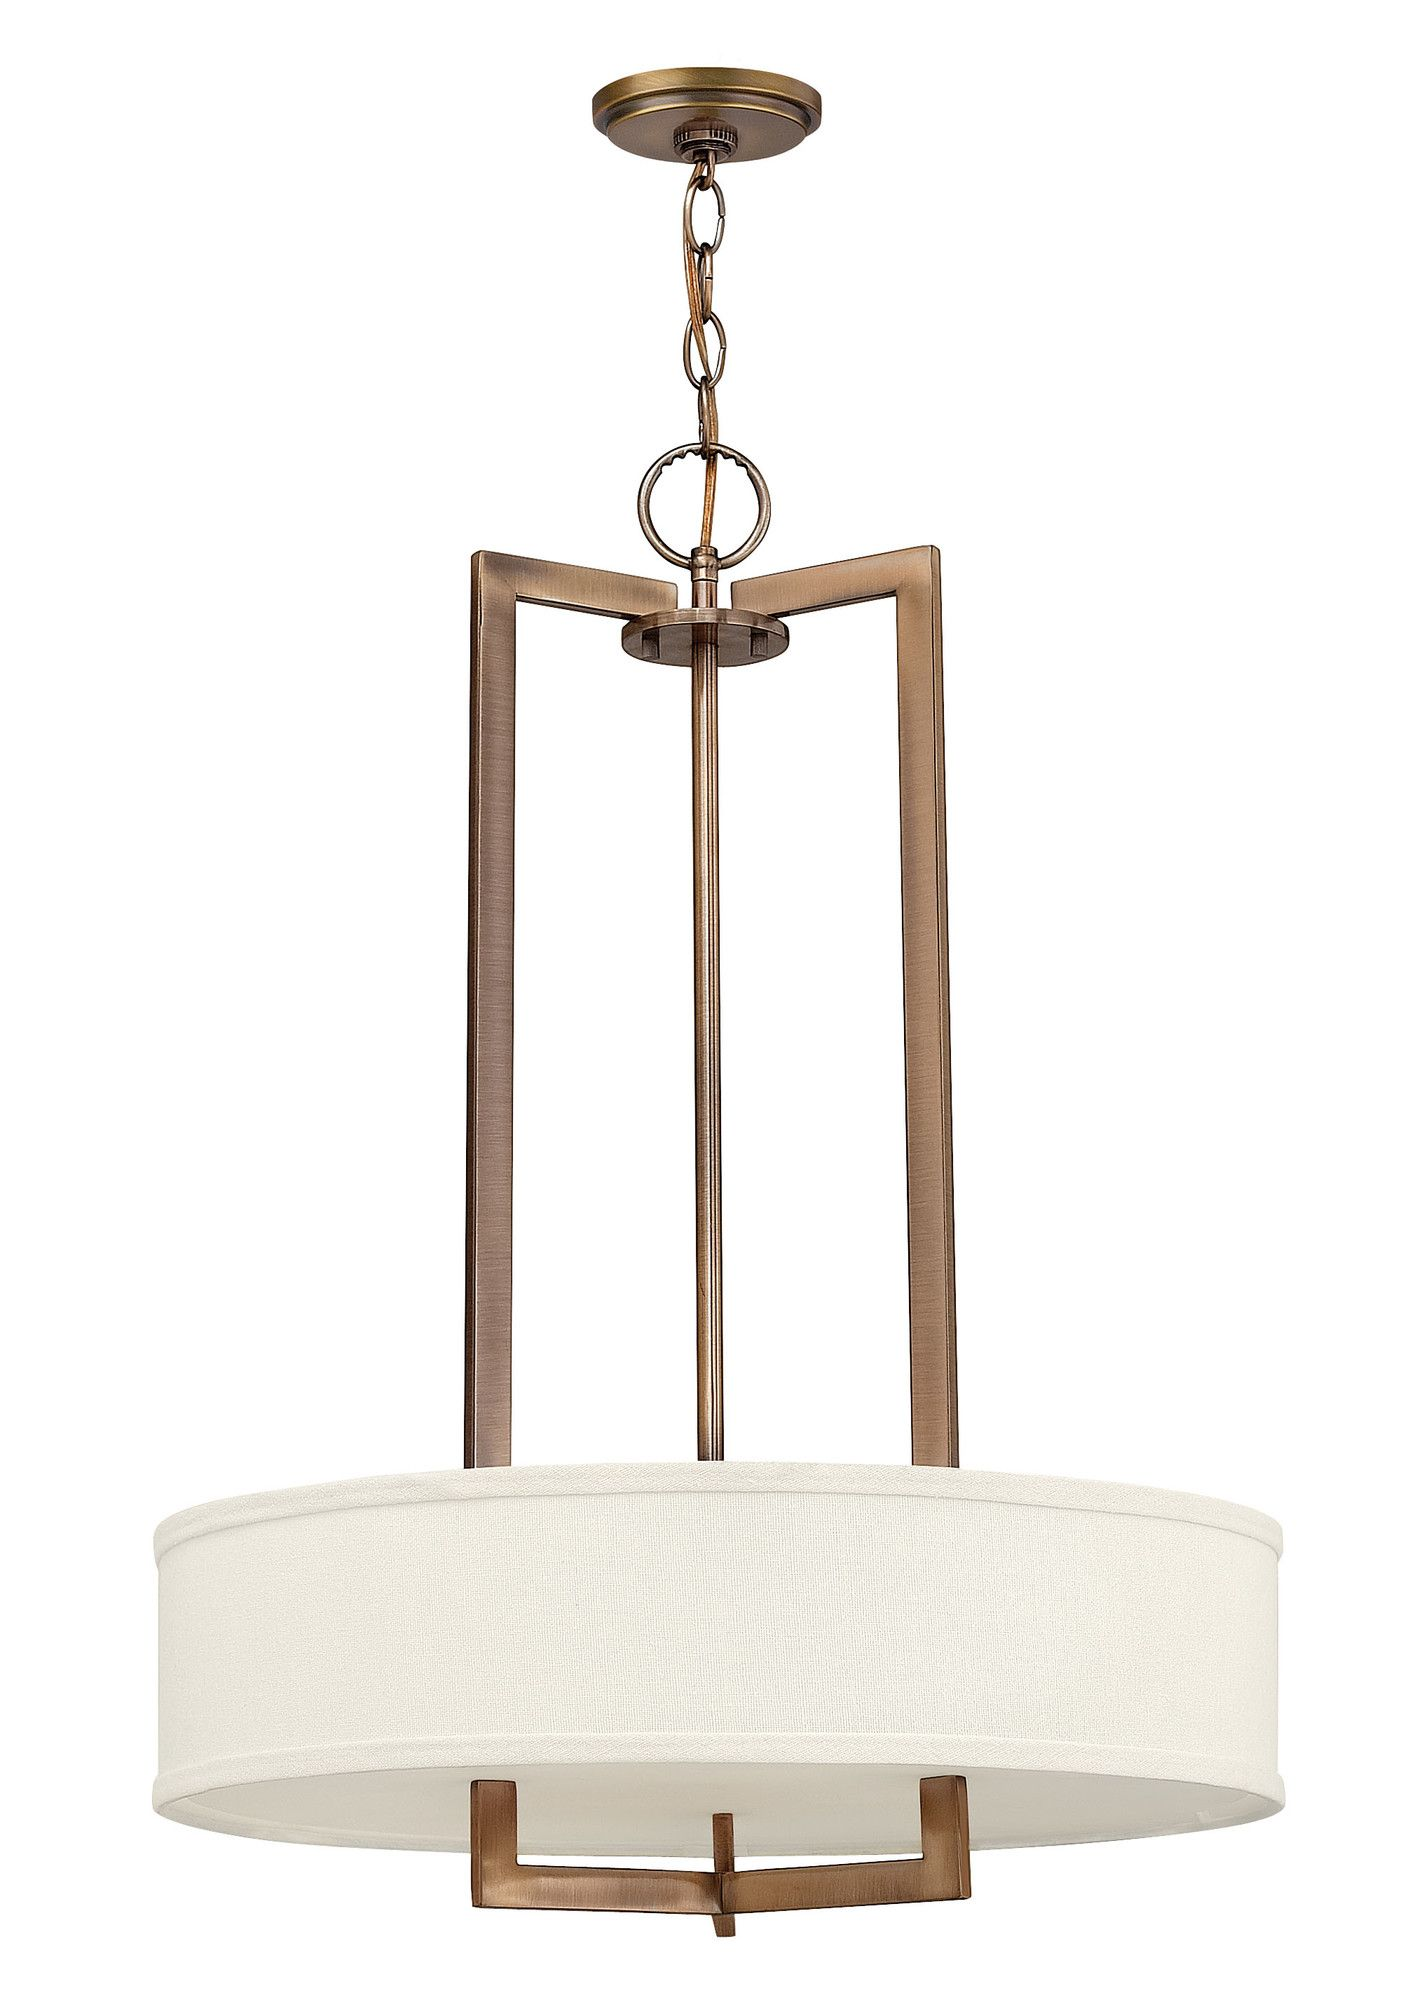 Hinkley Lighting Hampton 3 Light Drum Pendant Reviews Wayfair